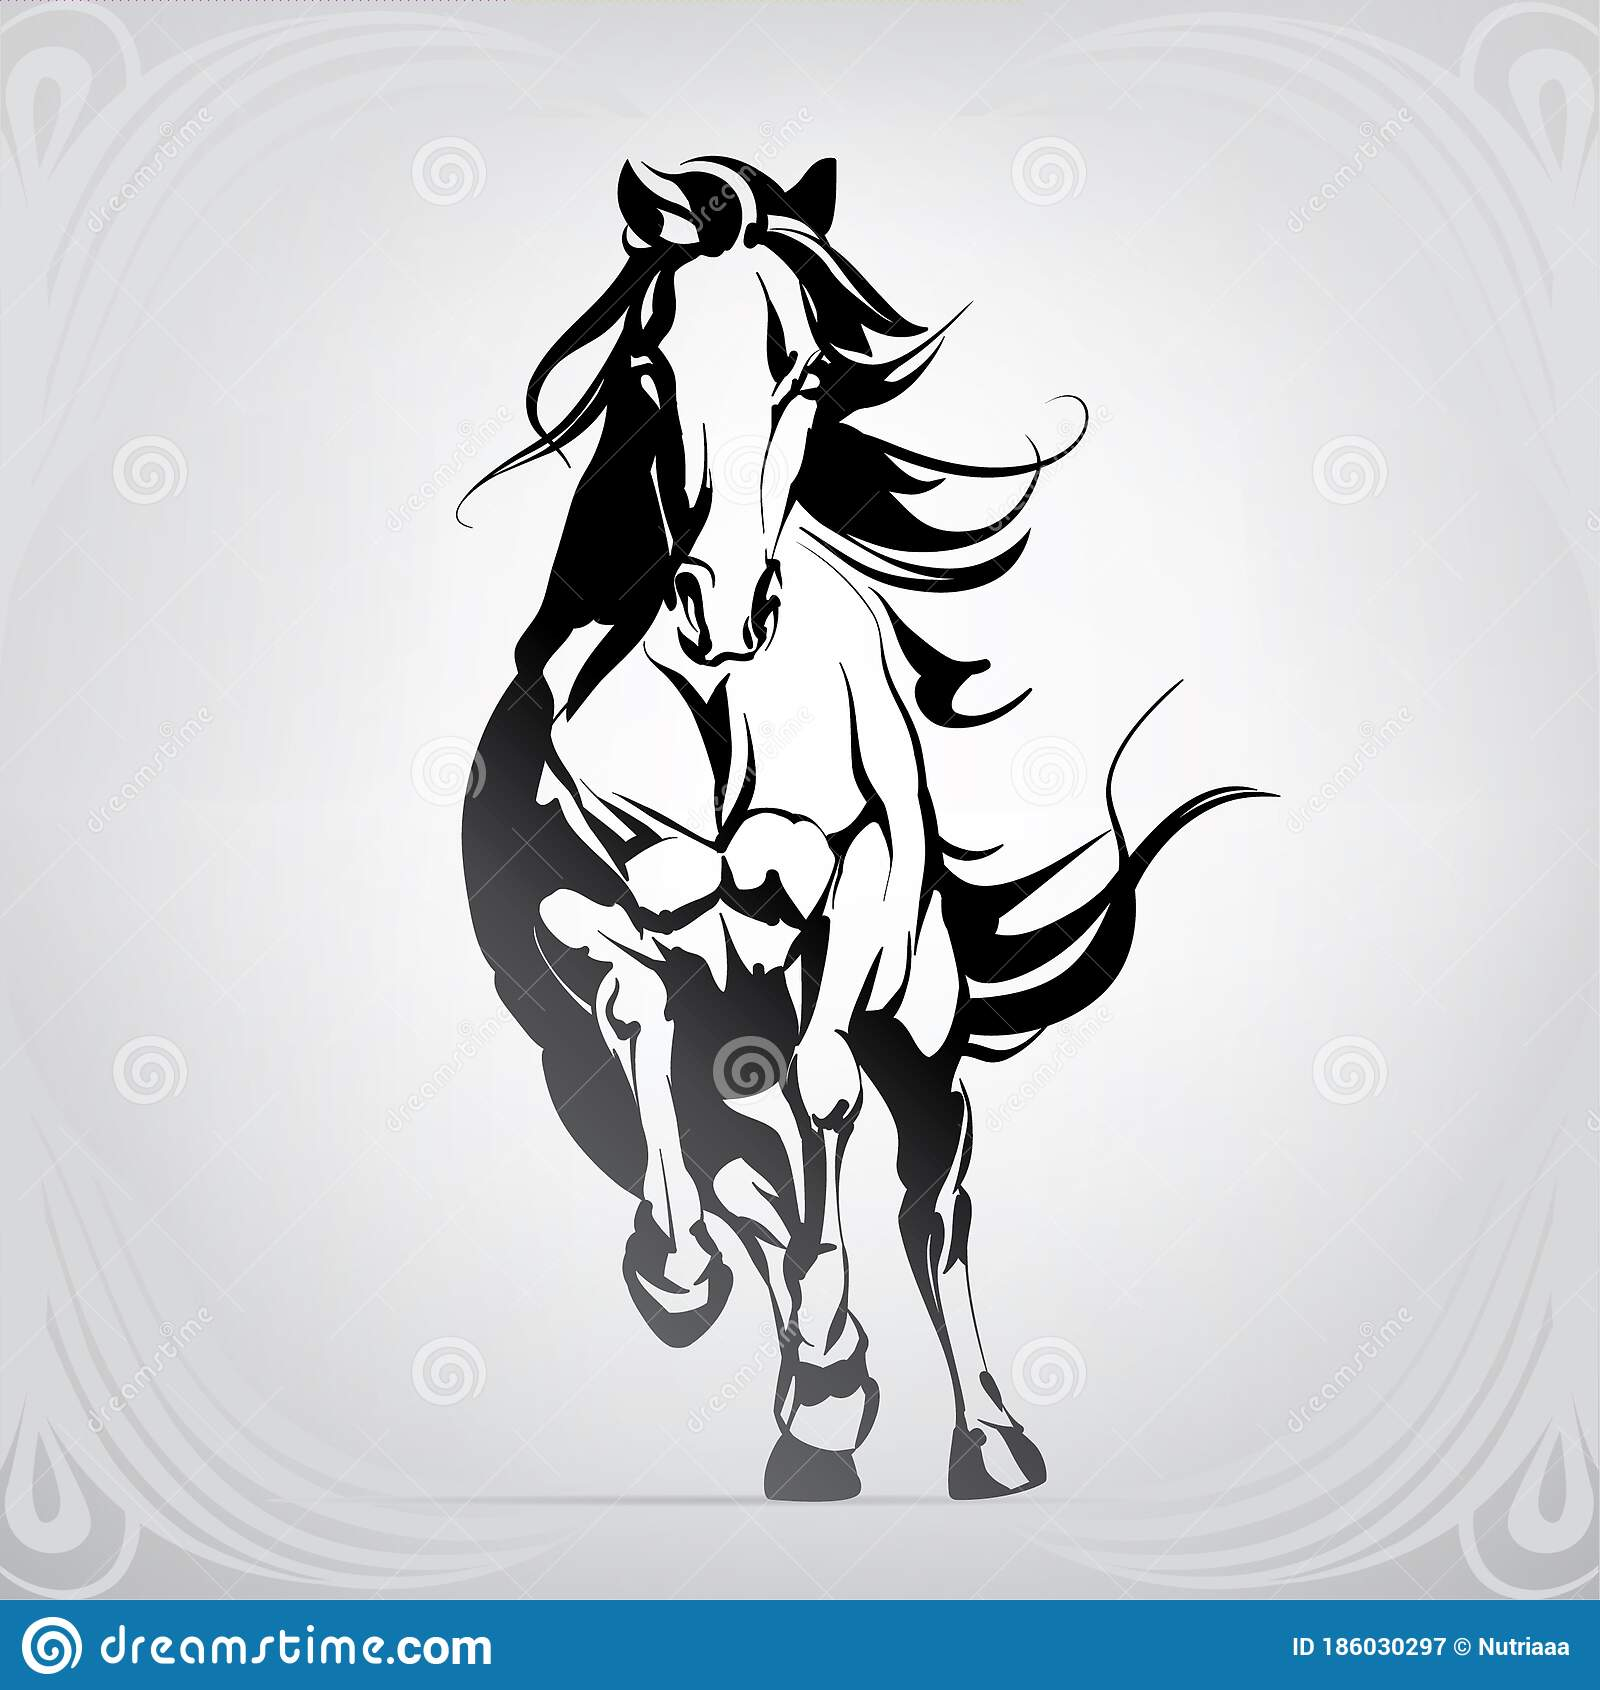 Vector Silhouette Of A Running Horse Vector Illustration Stock Vector Illustration Of Steed Head 186030297